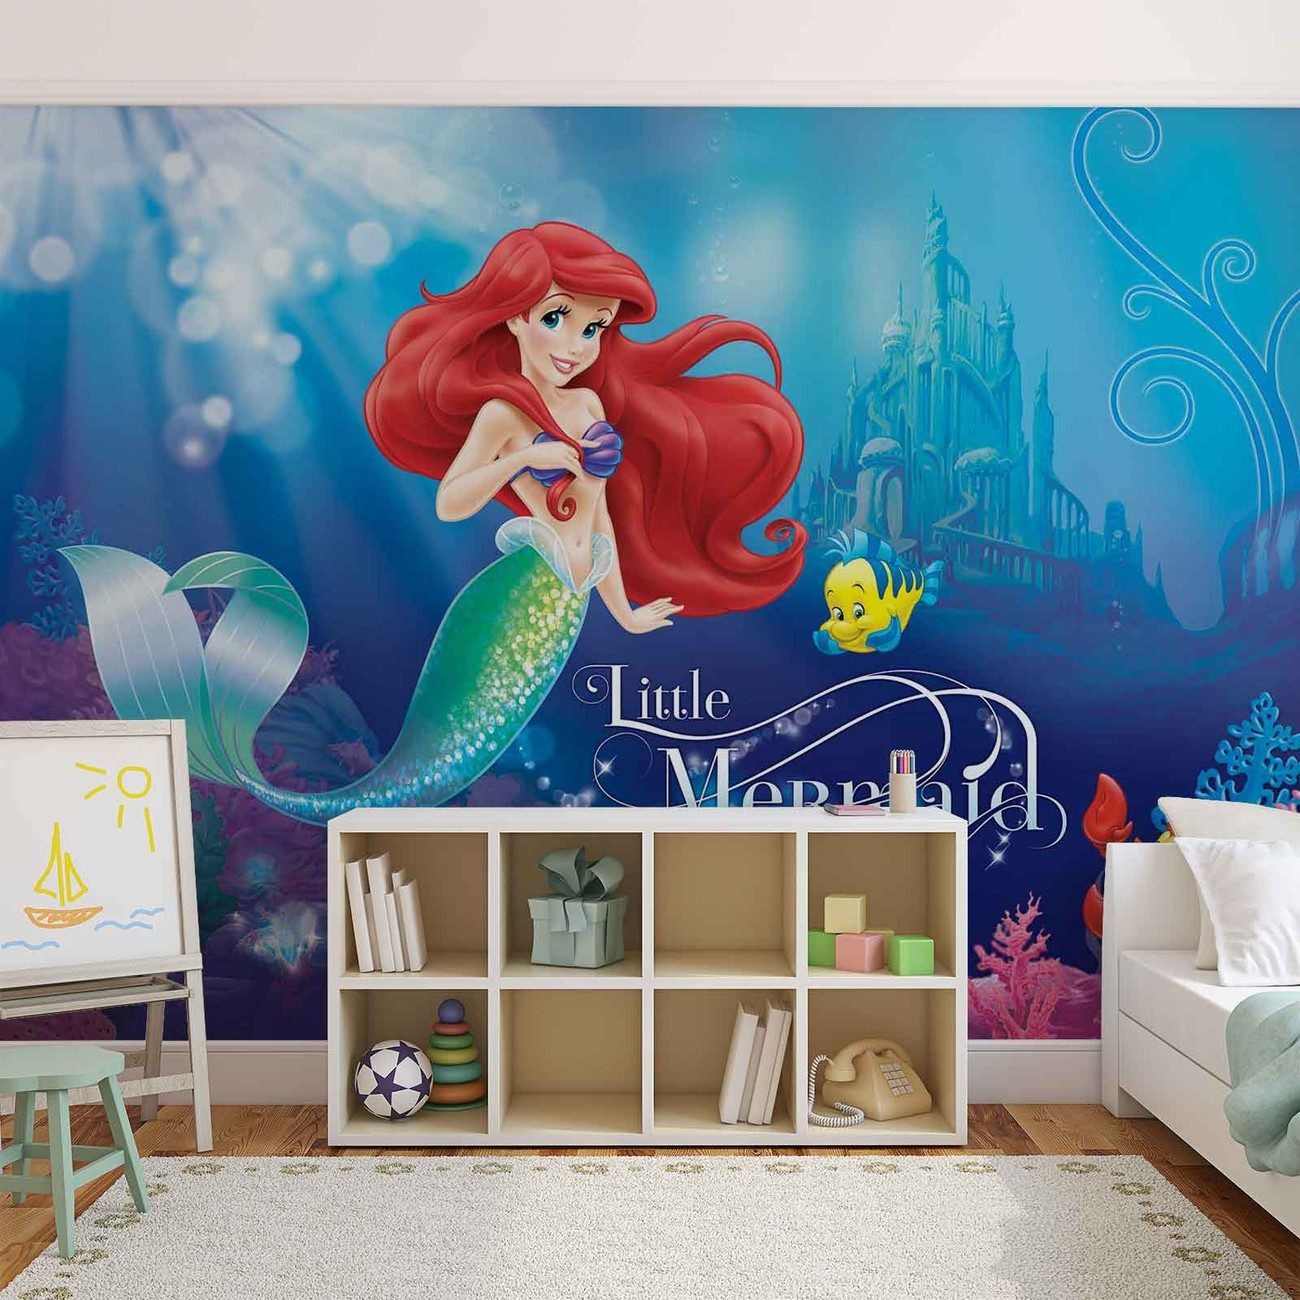 Disney princesses ariel wall paper mural buy at europosters for Disney princess wall mural